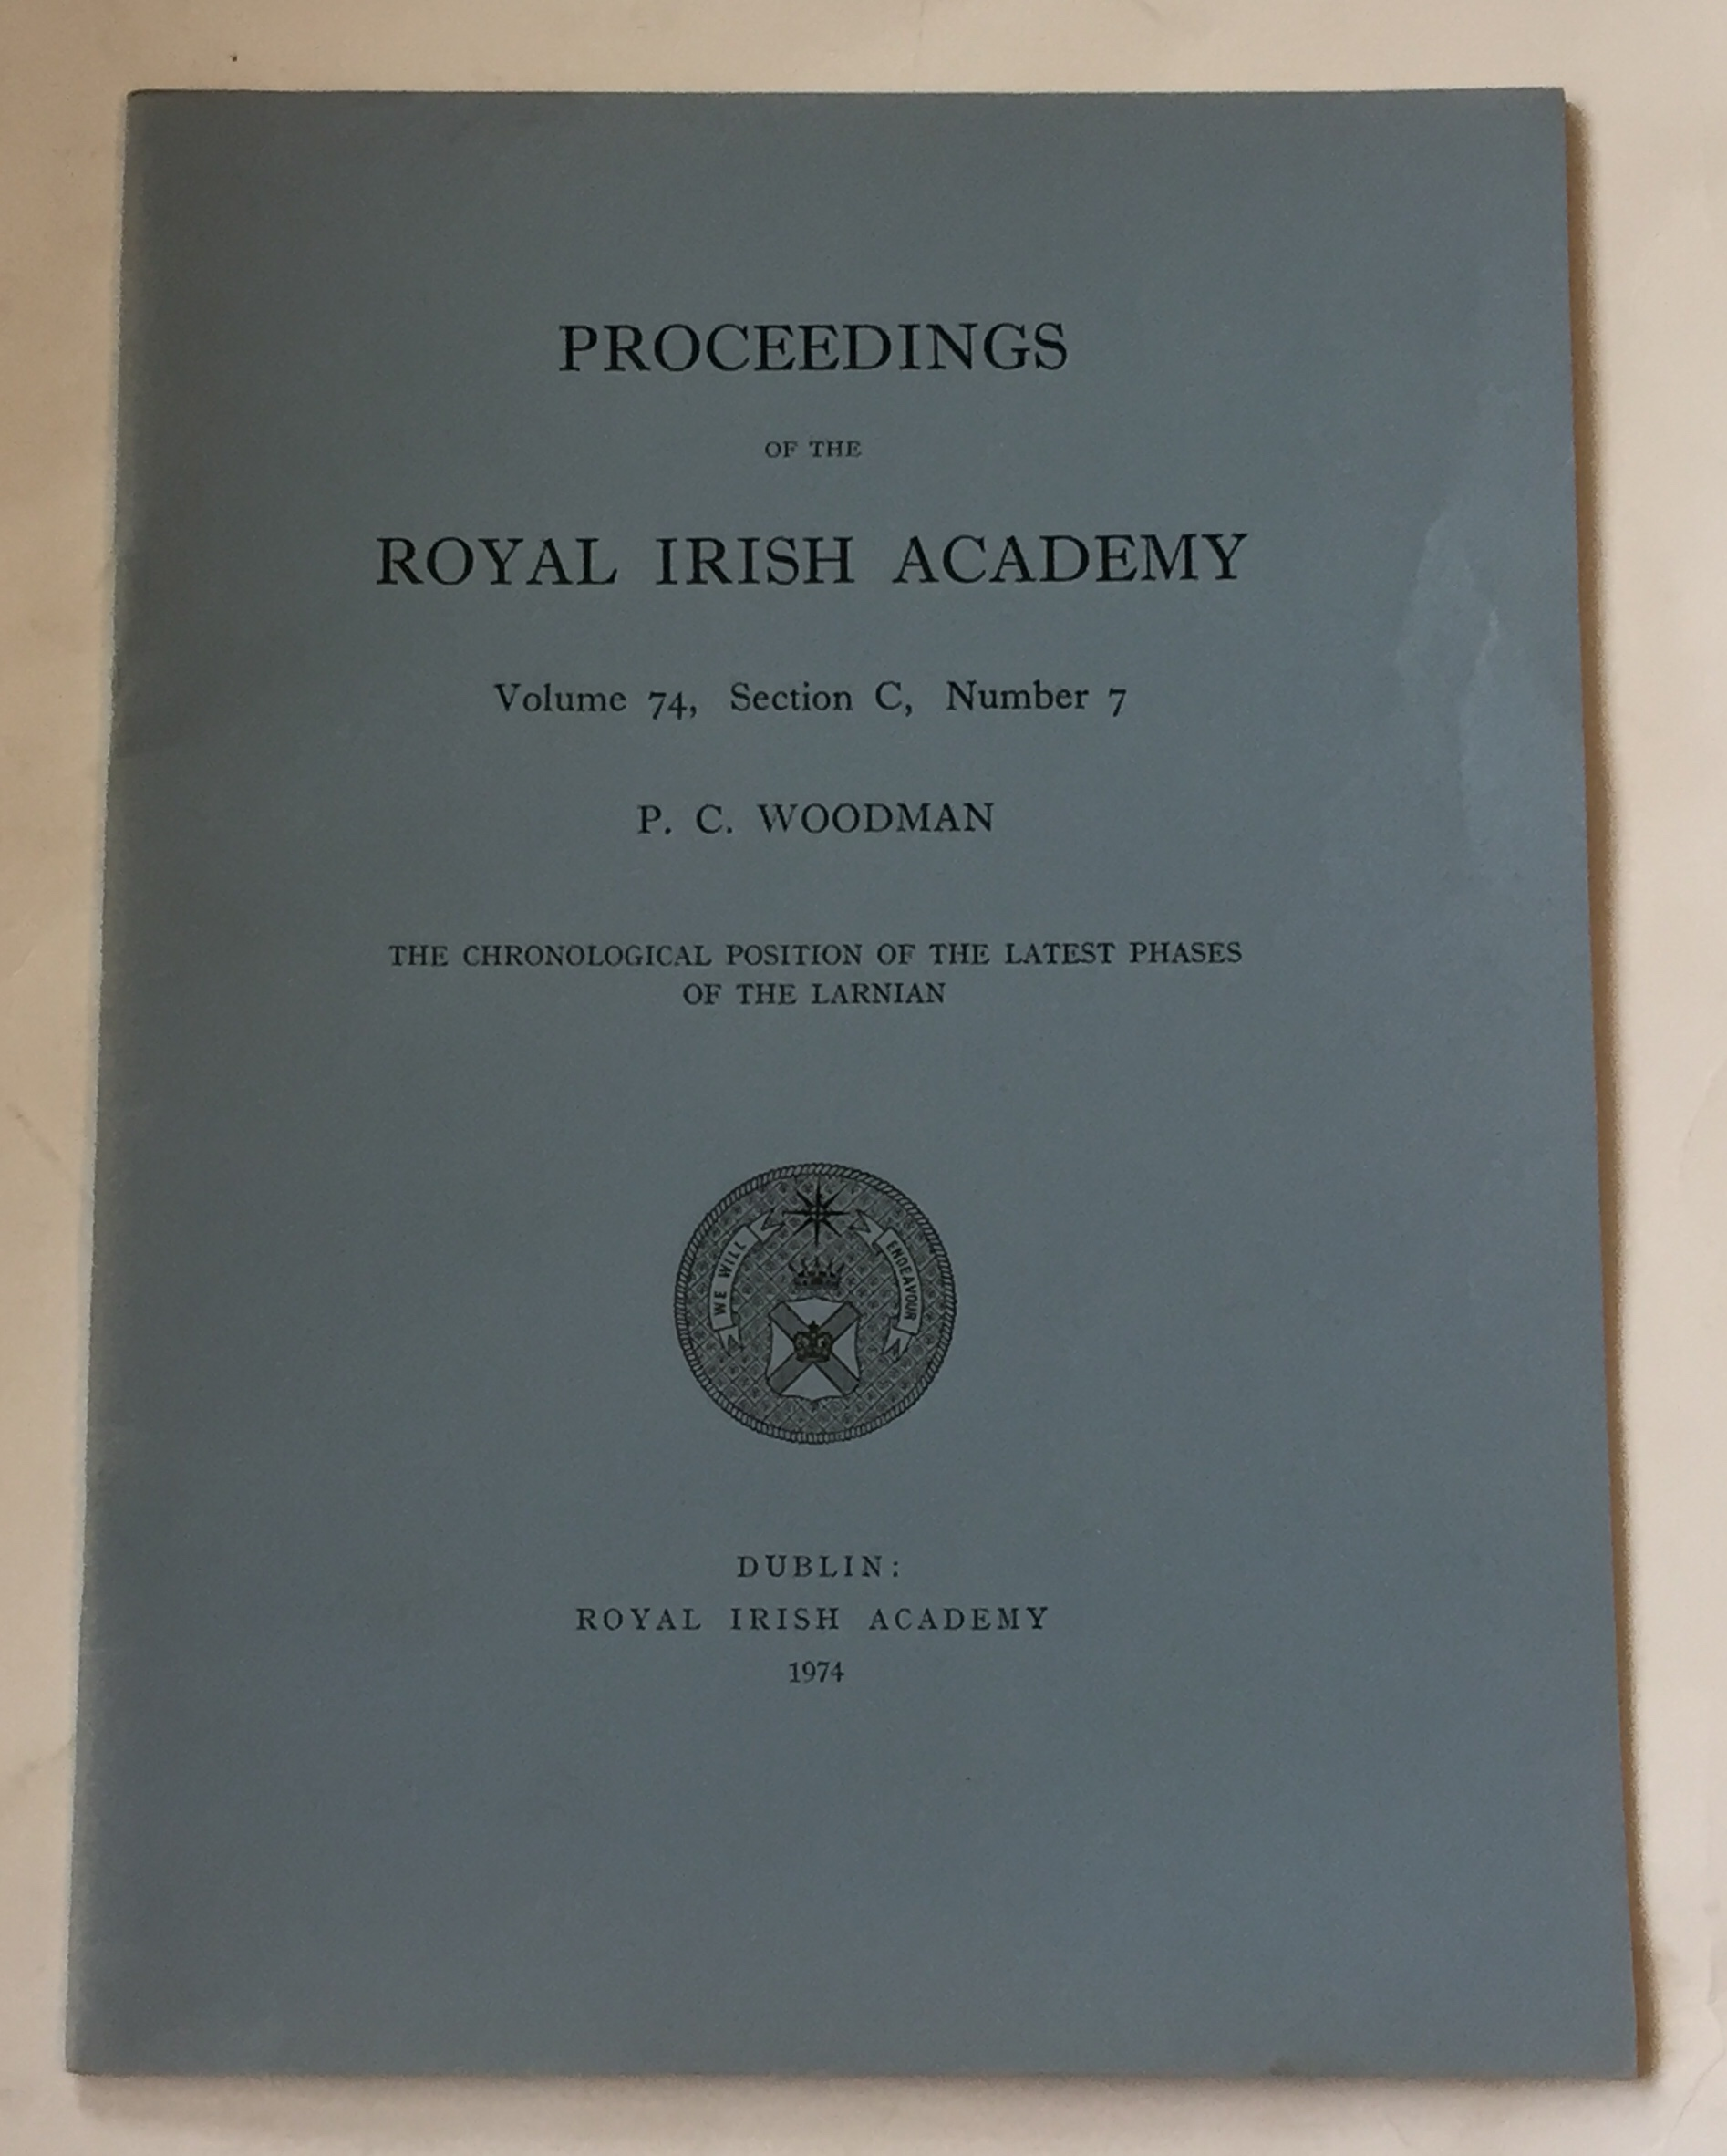 Image for The Chronological position of the latest phases of the Larnian :Proceedings of the Royal Irish Academy, Volume 74, Section C, No. 7